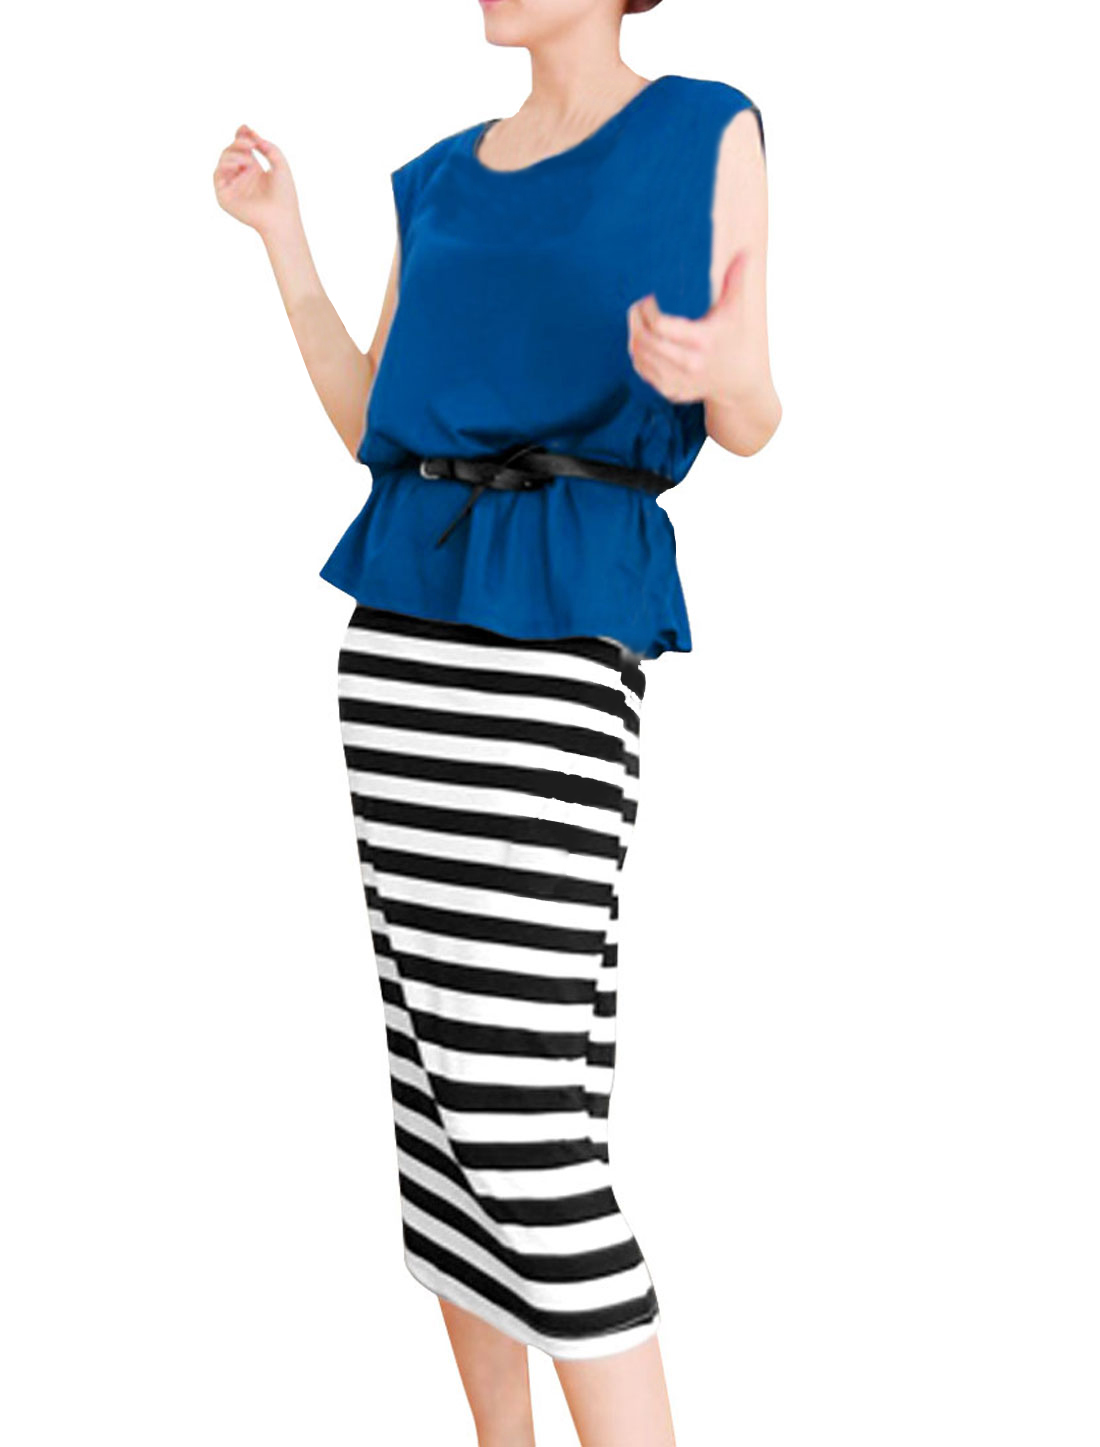 Lady Scoop Neck Stretchy Top w Stripes Prints Royal Blue Black Mid-calf Dress XS